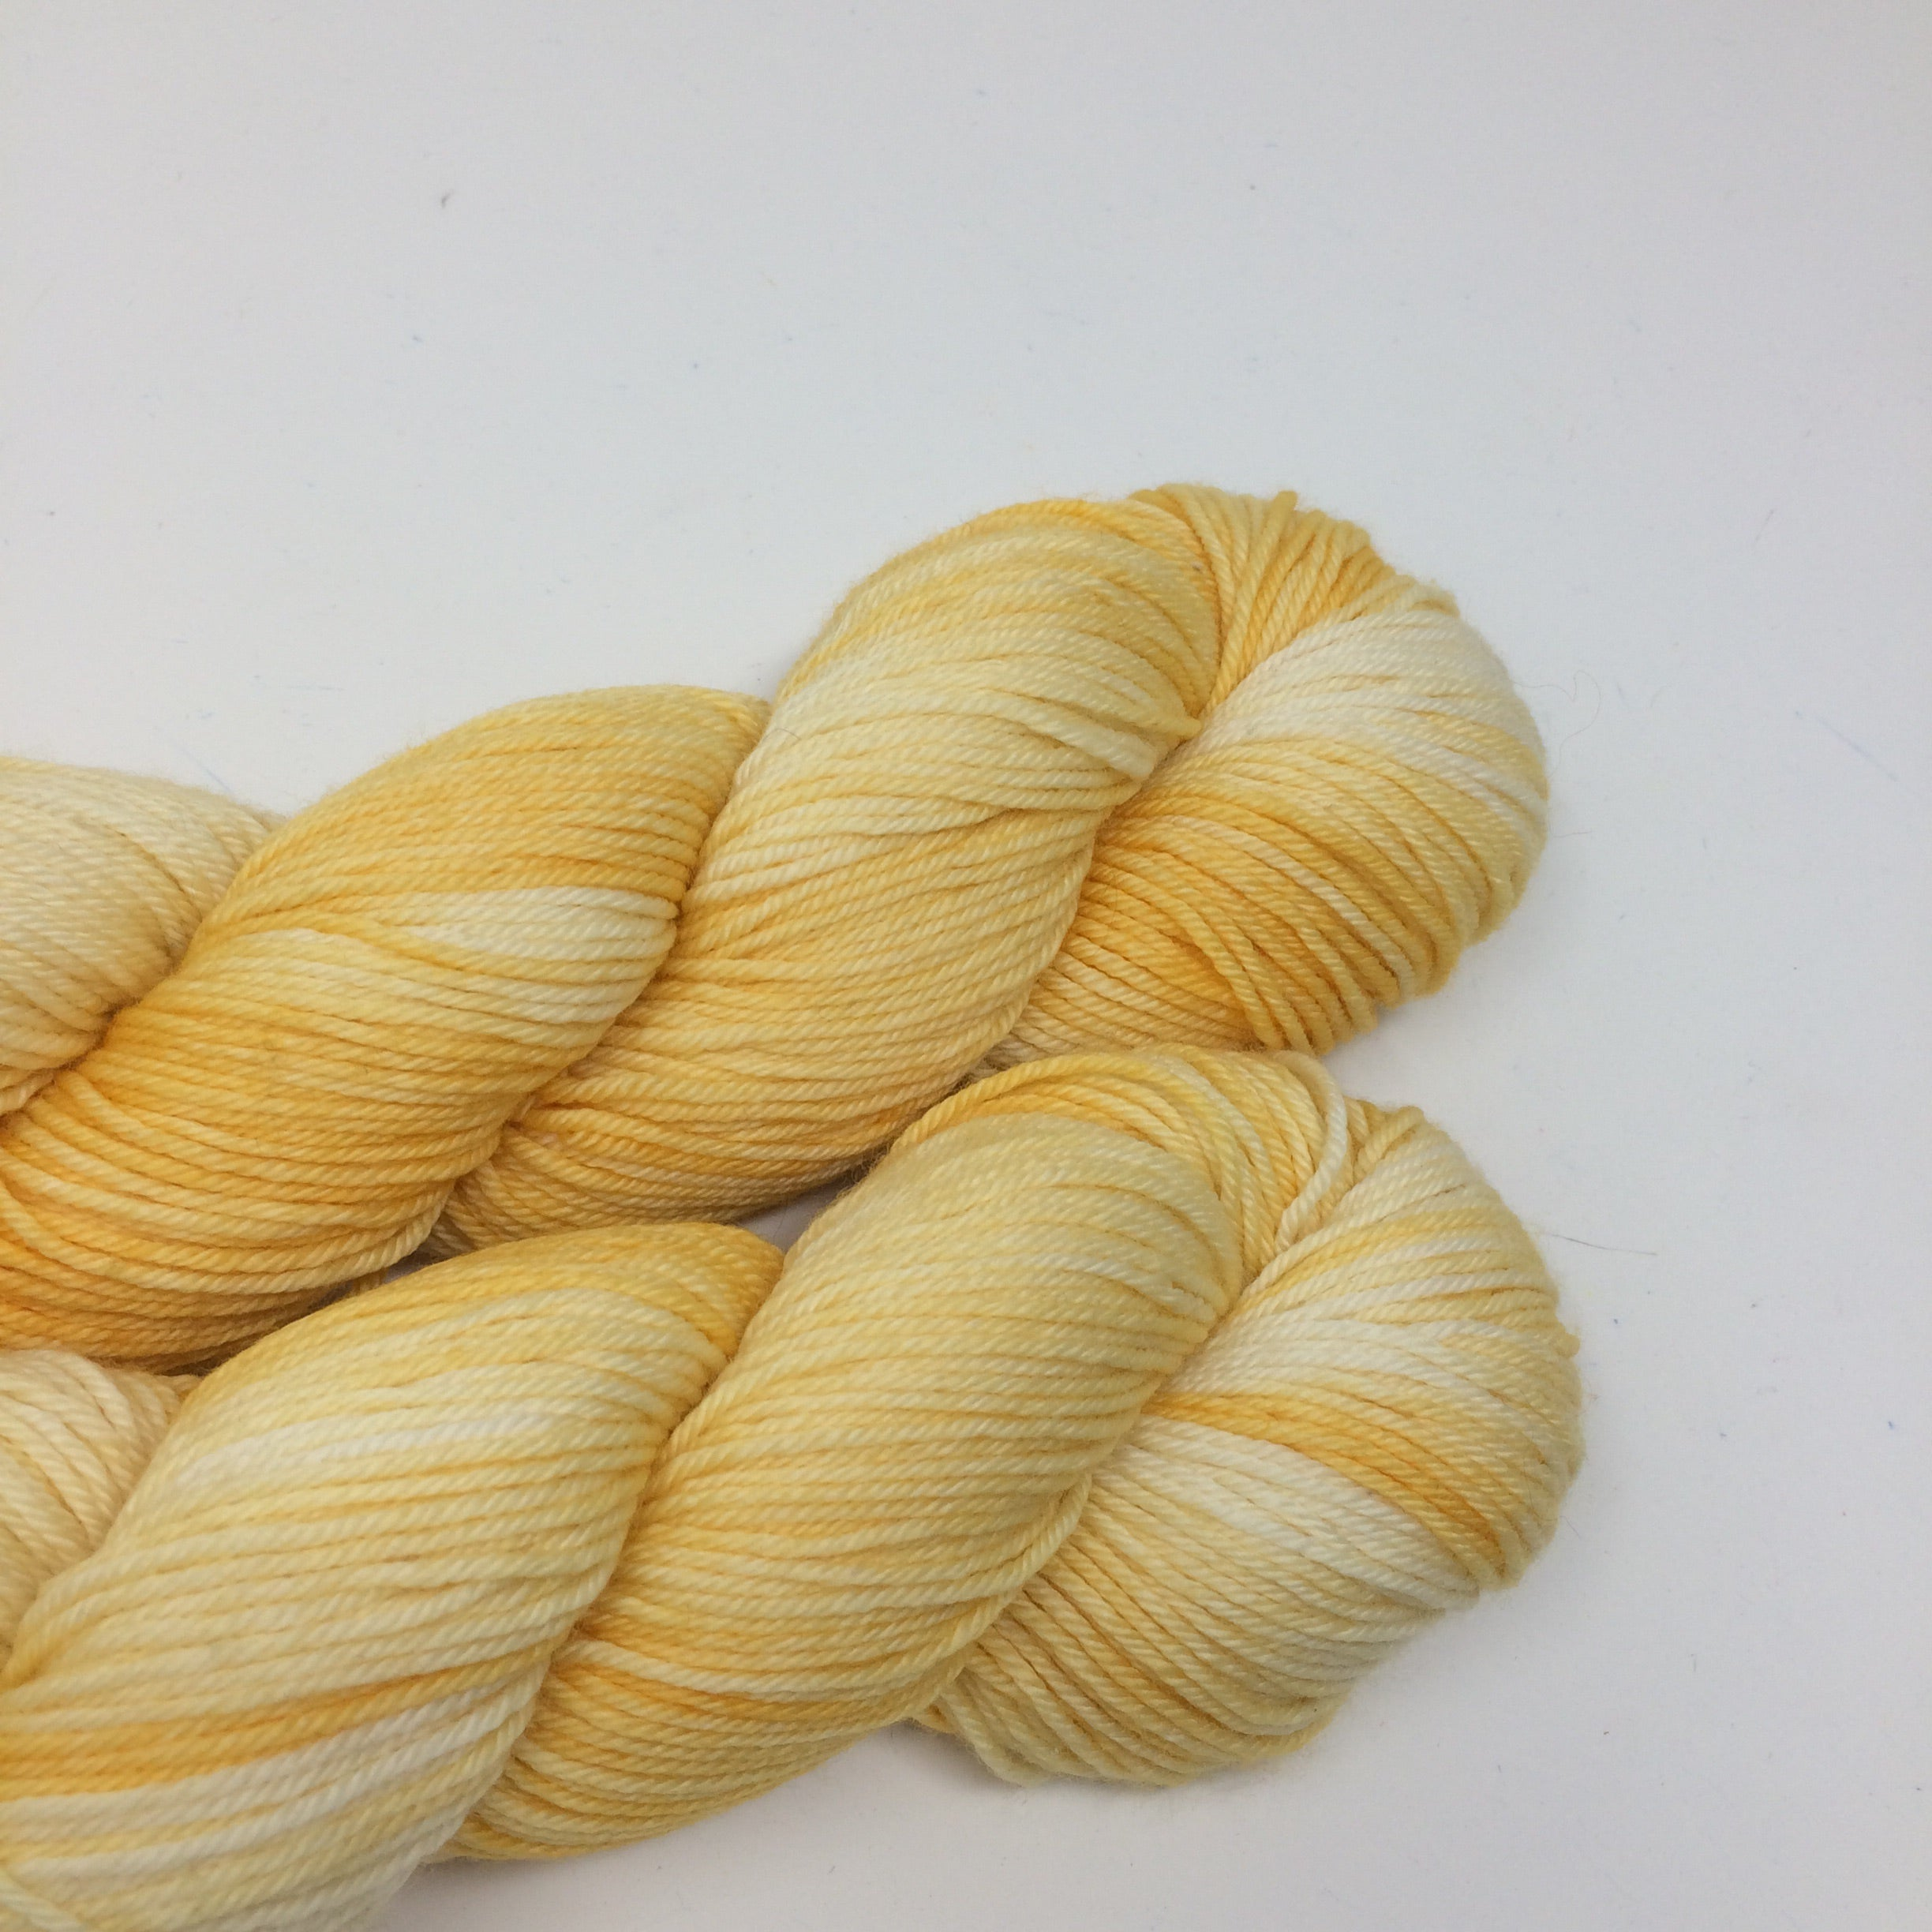 Sunshine - Delightful DK - the perfect sweater yarn